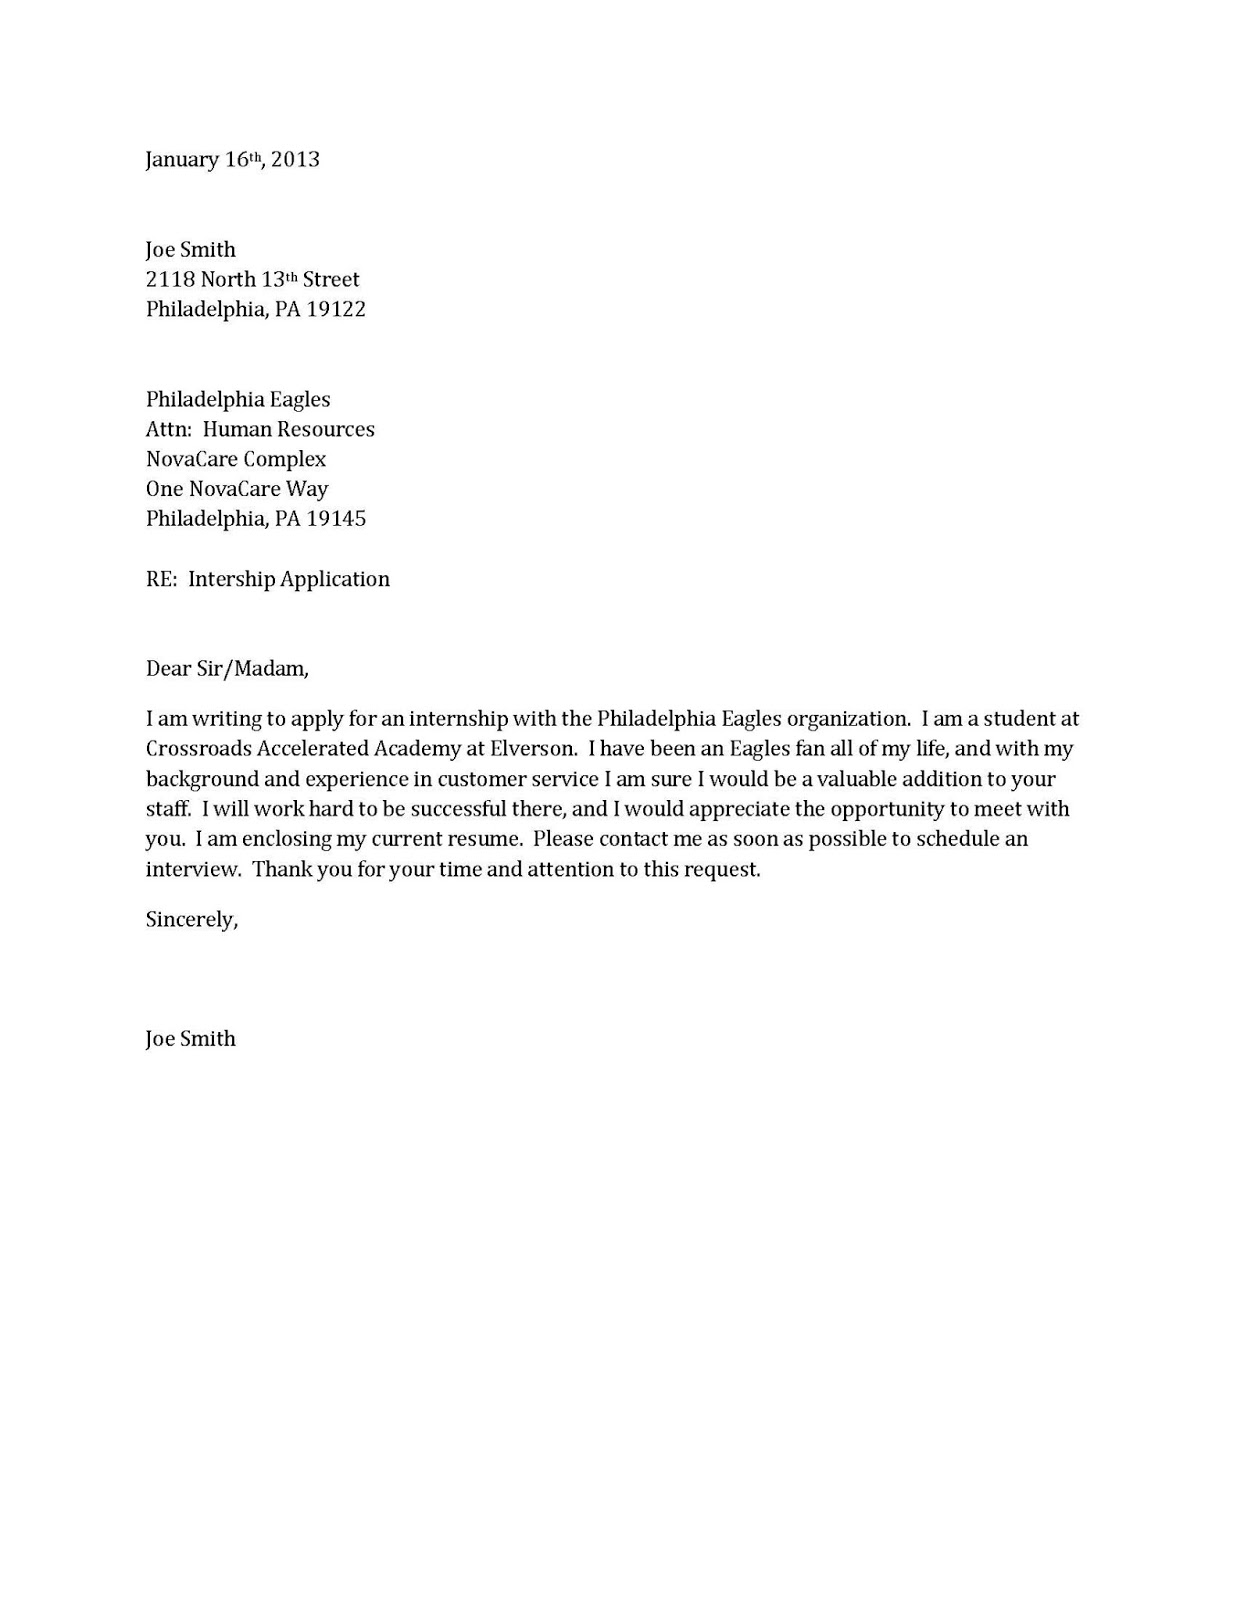 cover letter example resumes - Cover Letter Examples For Resumes Free